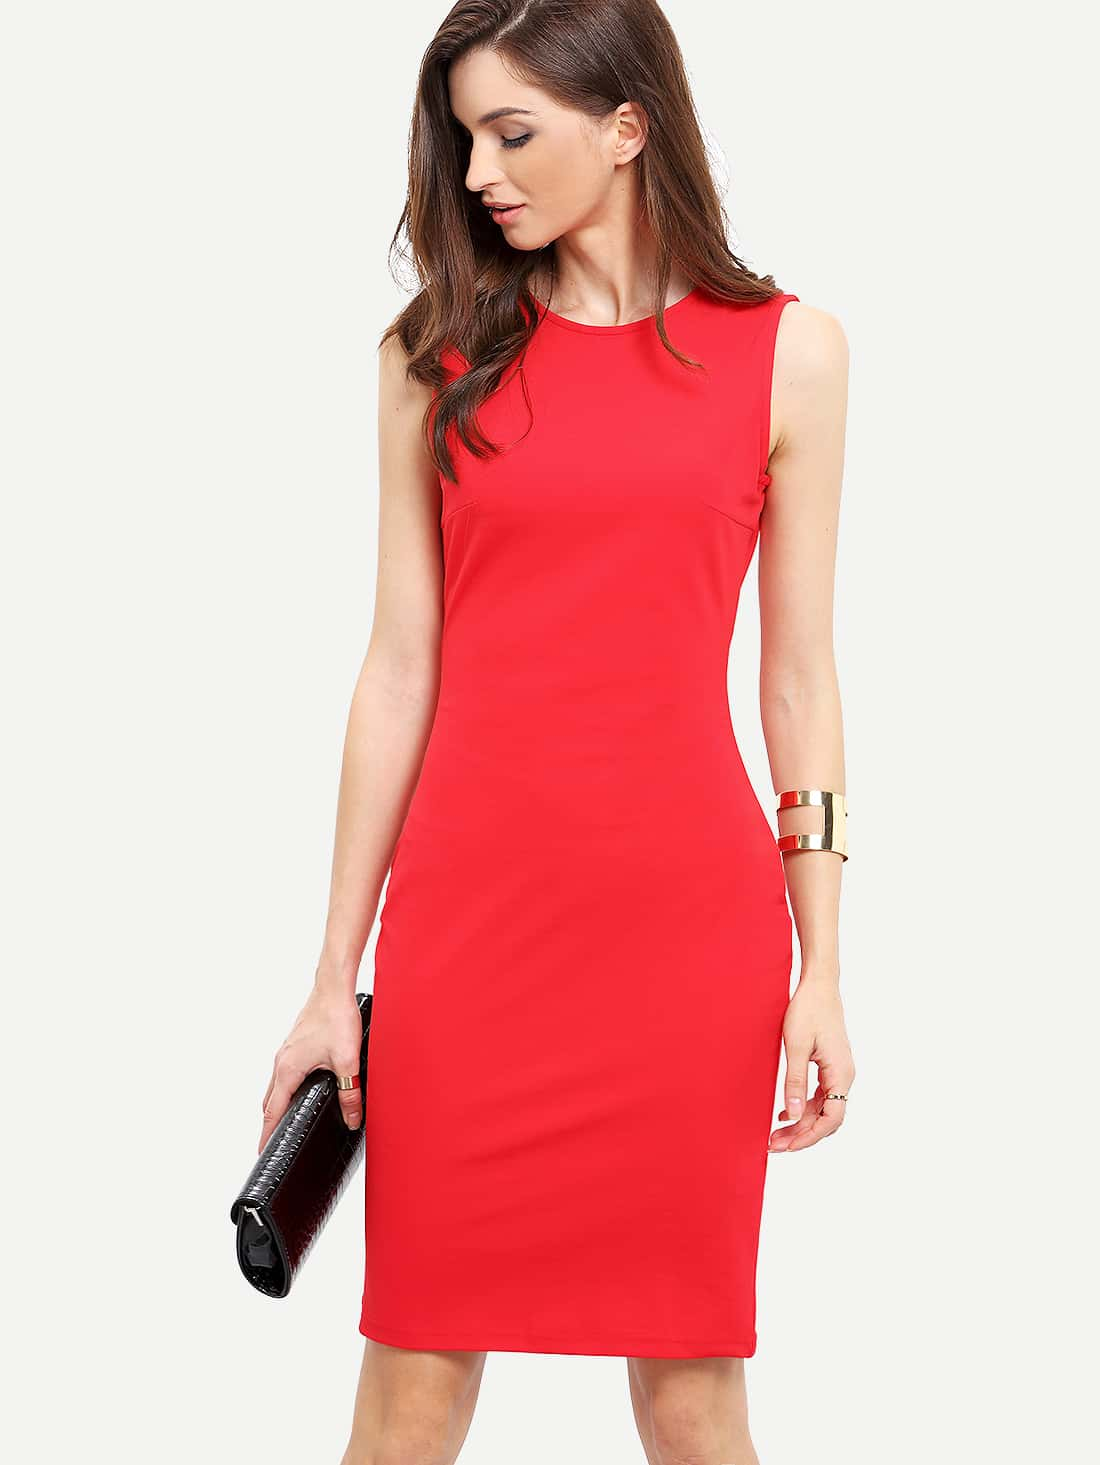 Red Sleeveless Knee Length Sheath Dress Mobile Site